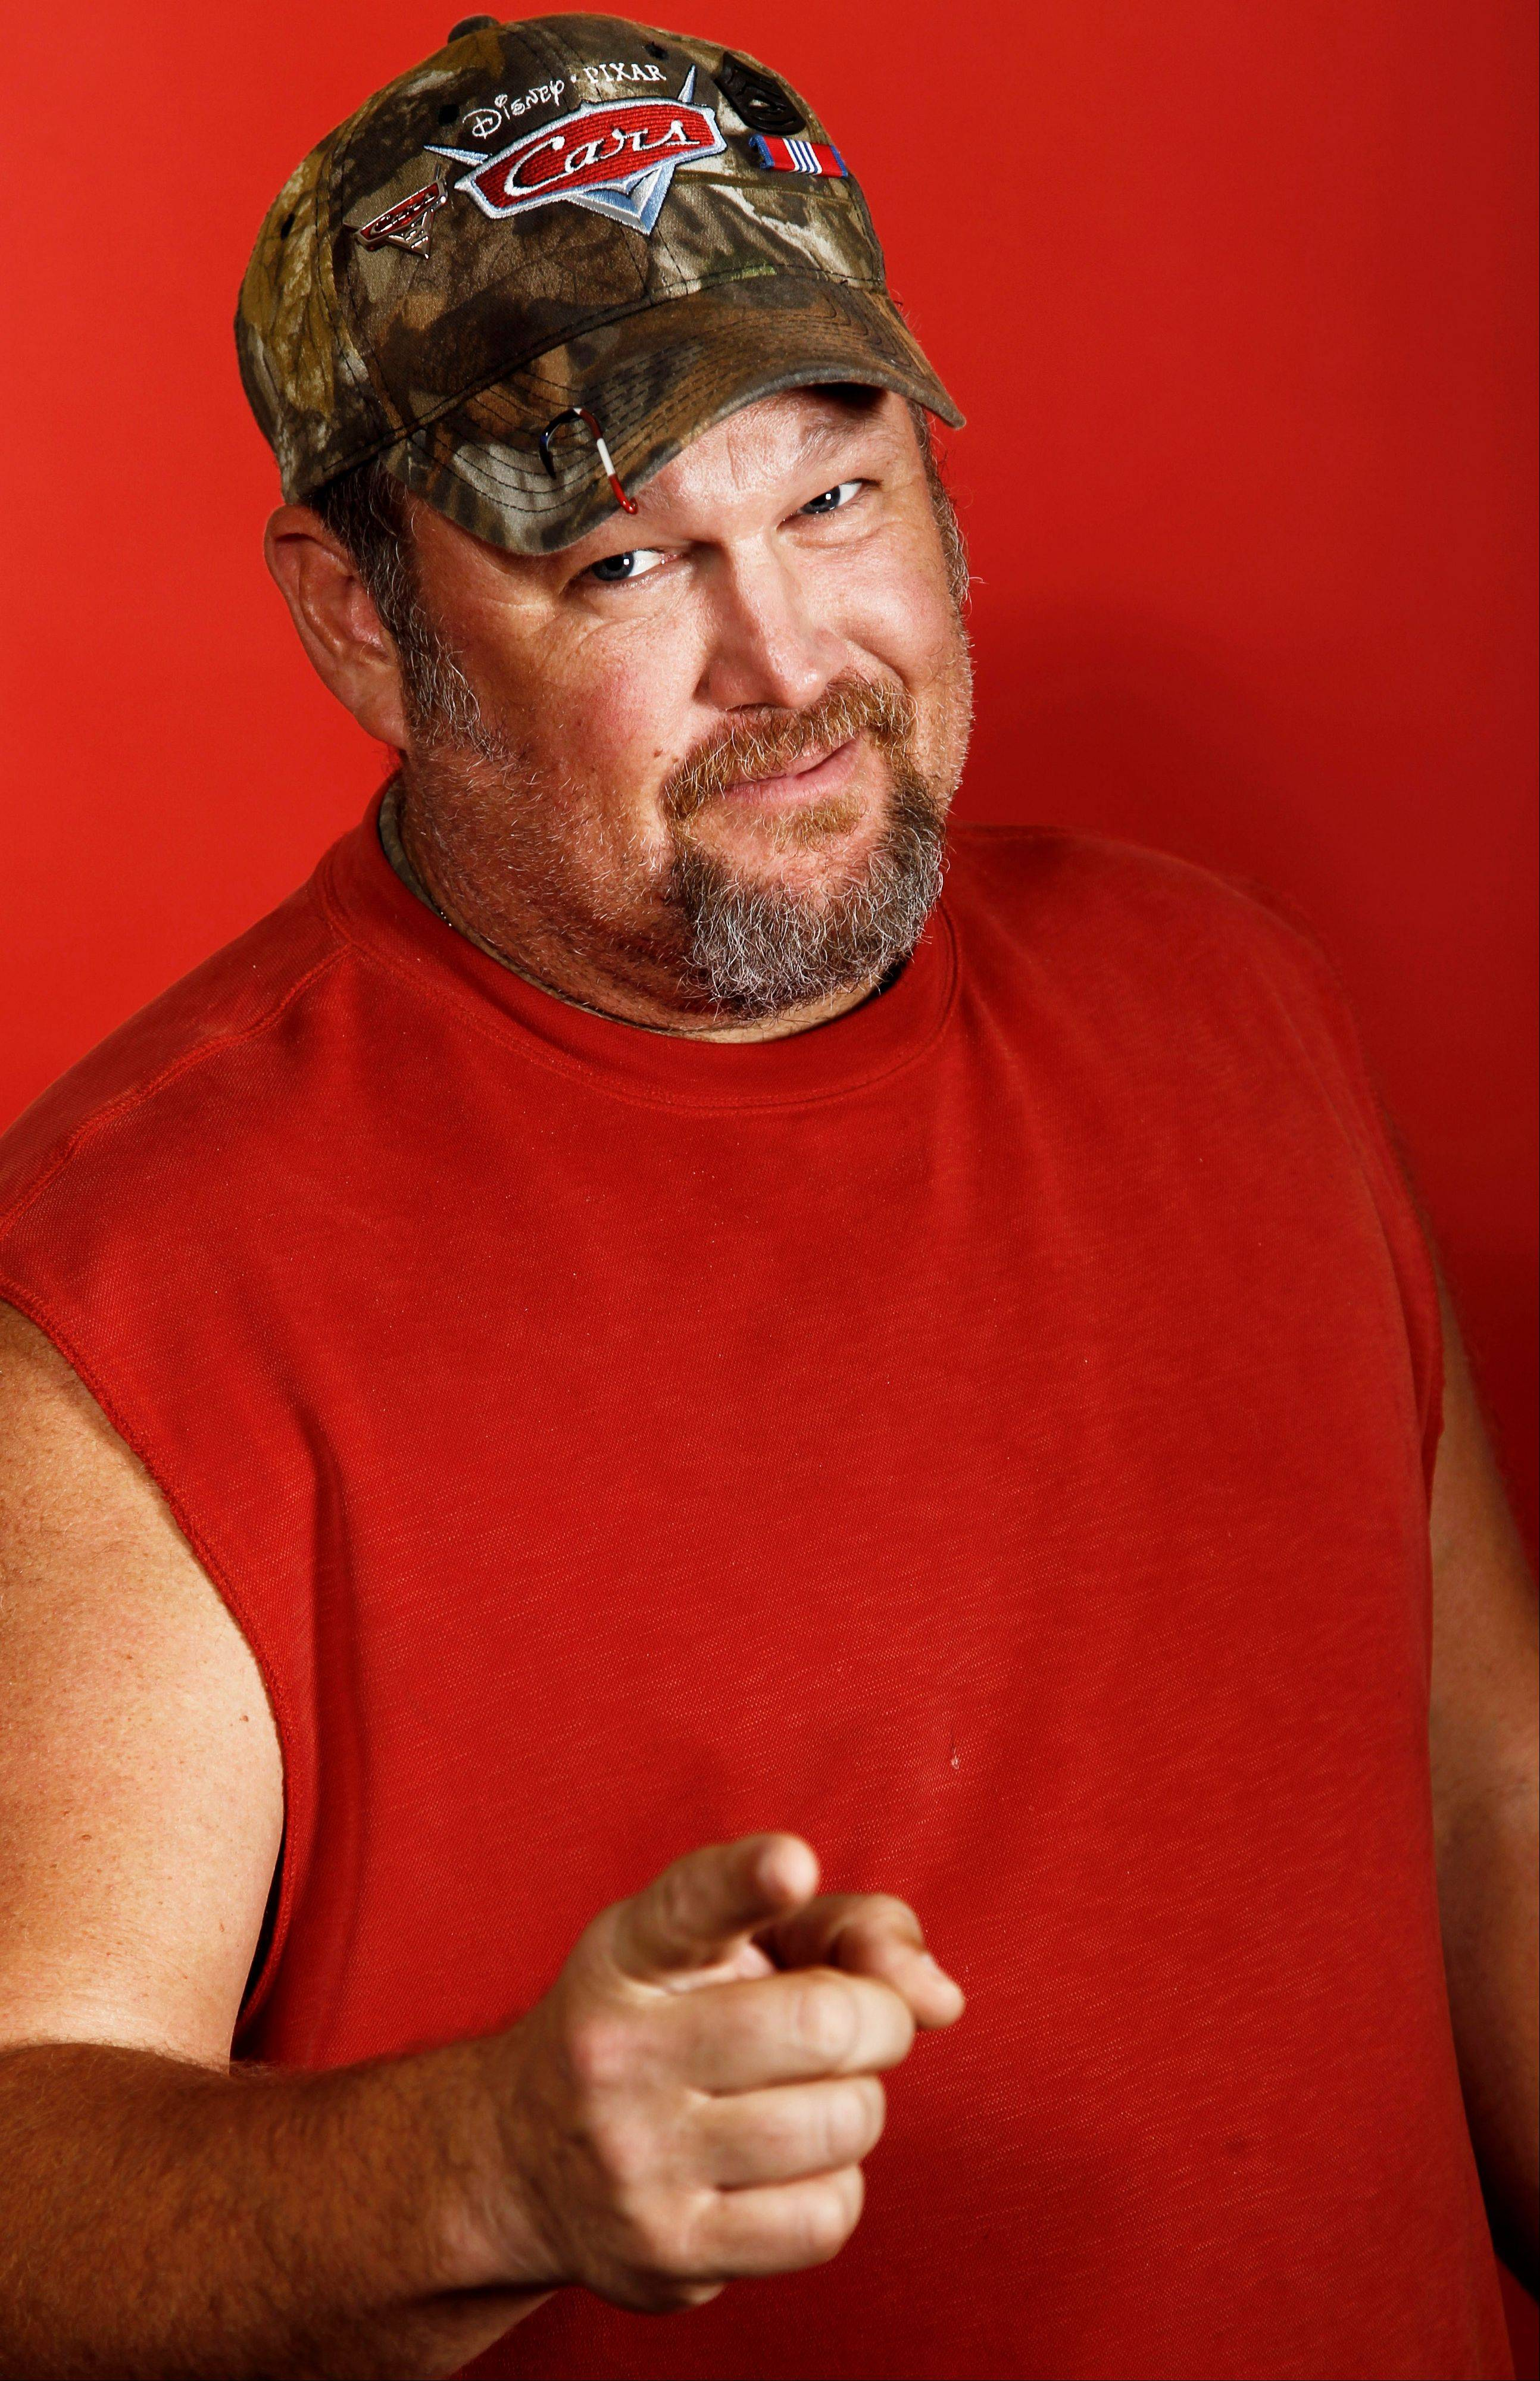 Comedian and actor Larry the Cable Guy (aka Dan Whitney) is set to perform at 5 and 9 p.m. Saturday, Oct. 19, at the Paramount Theatre in Aurora.